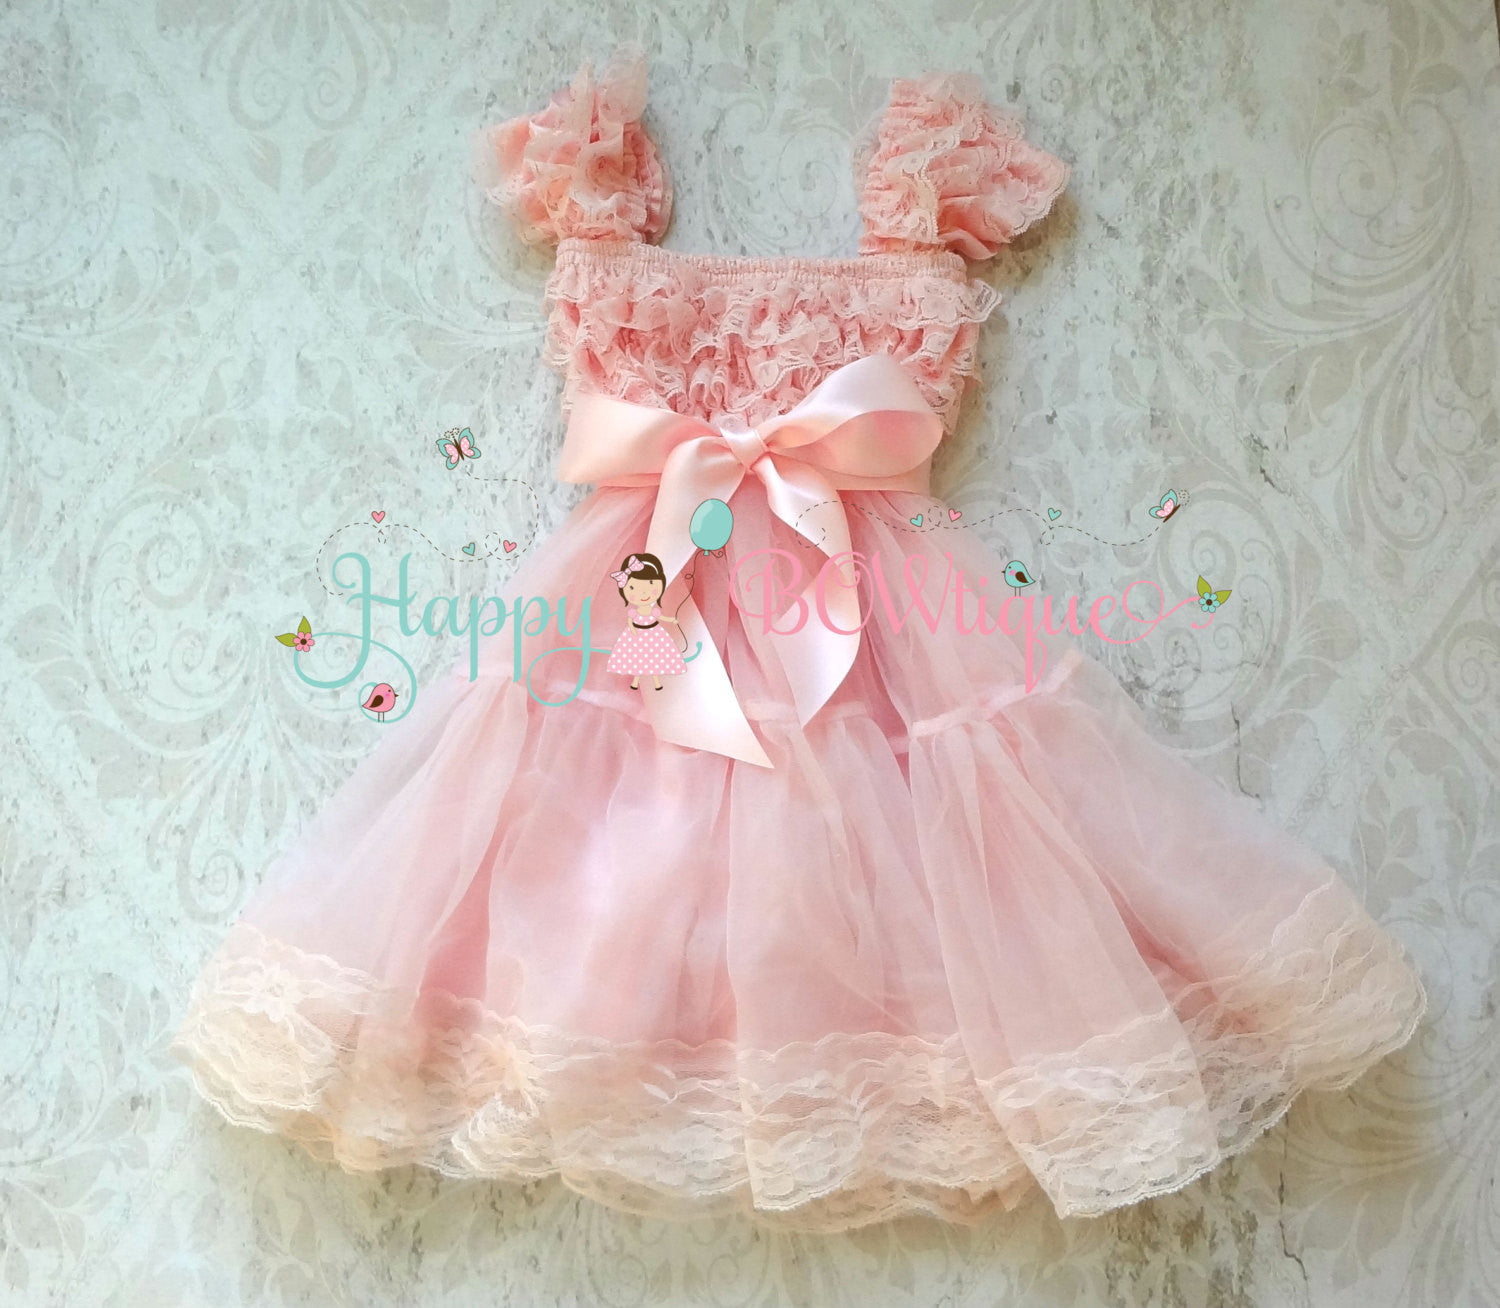 Baby Pink Bow Babydoll Chiffon Lace Dress - Happy BOWtique - children's clothing, Baby Girl clothing